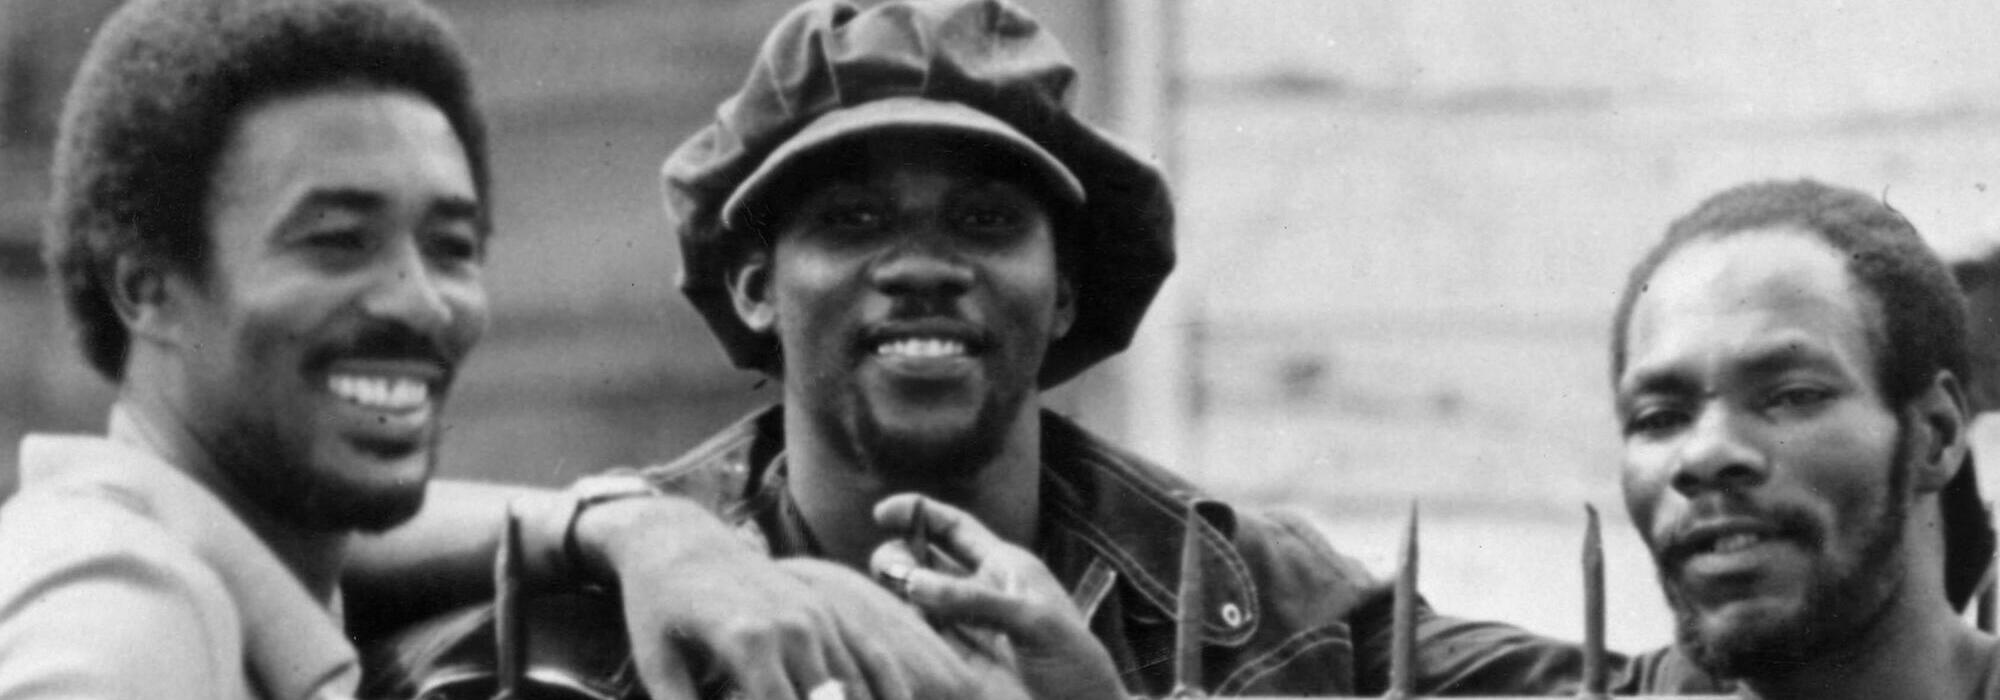 A Toots and the Maytals live event